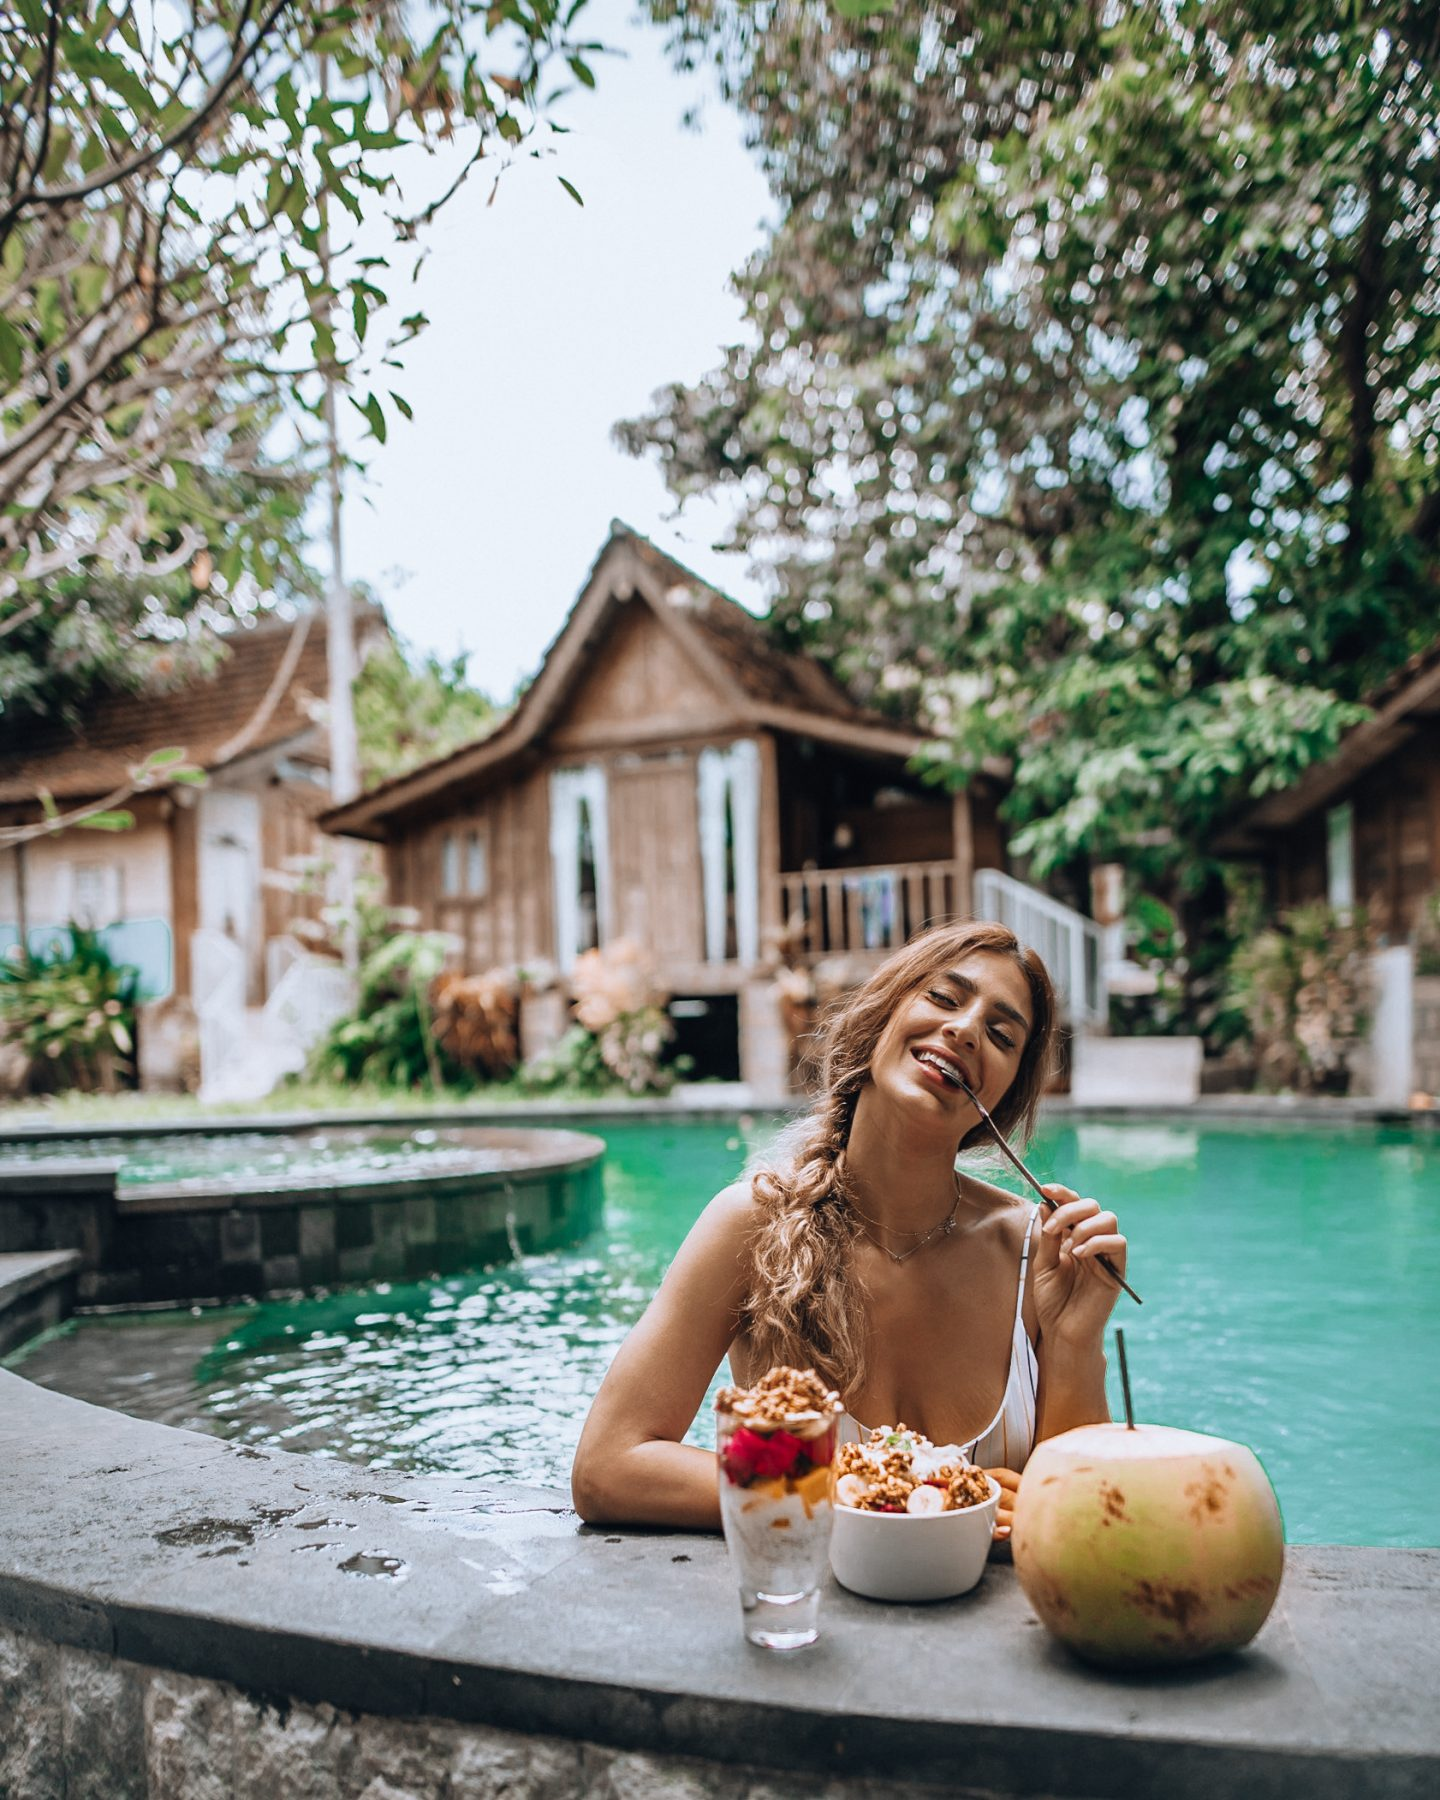 Best Cafes in Bali: A Complete Food Guide